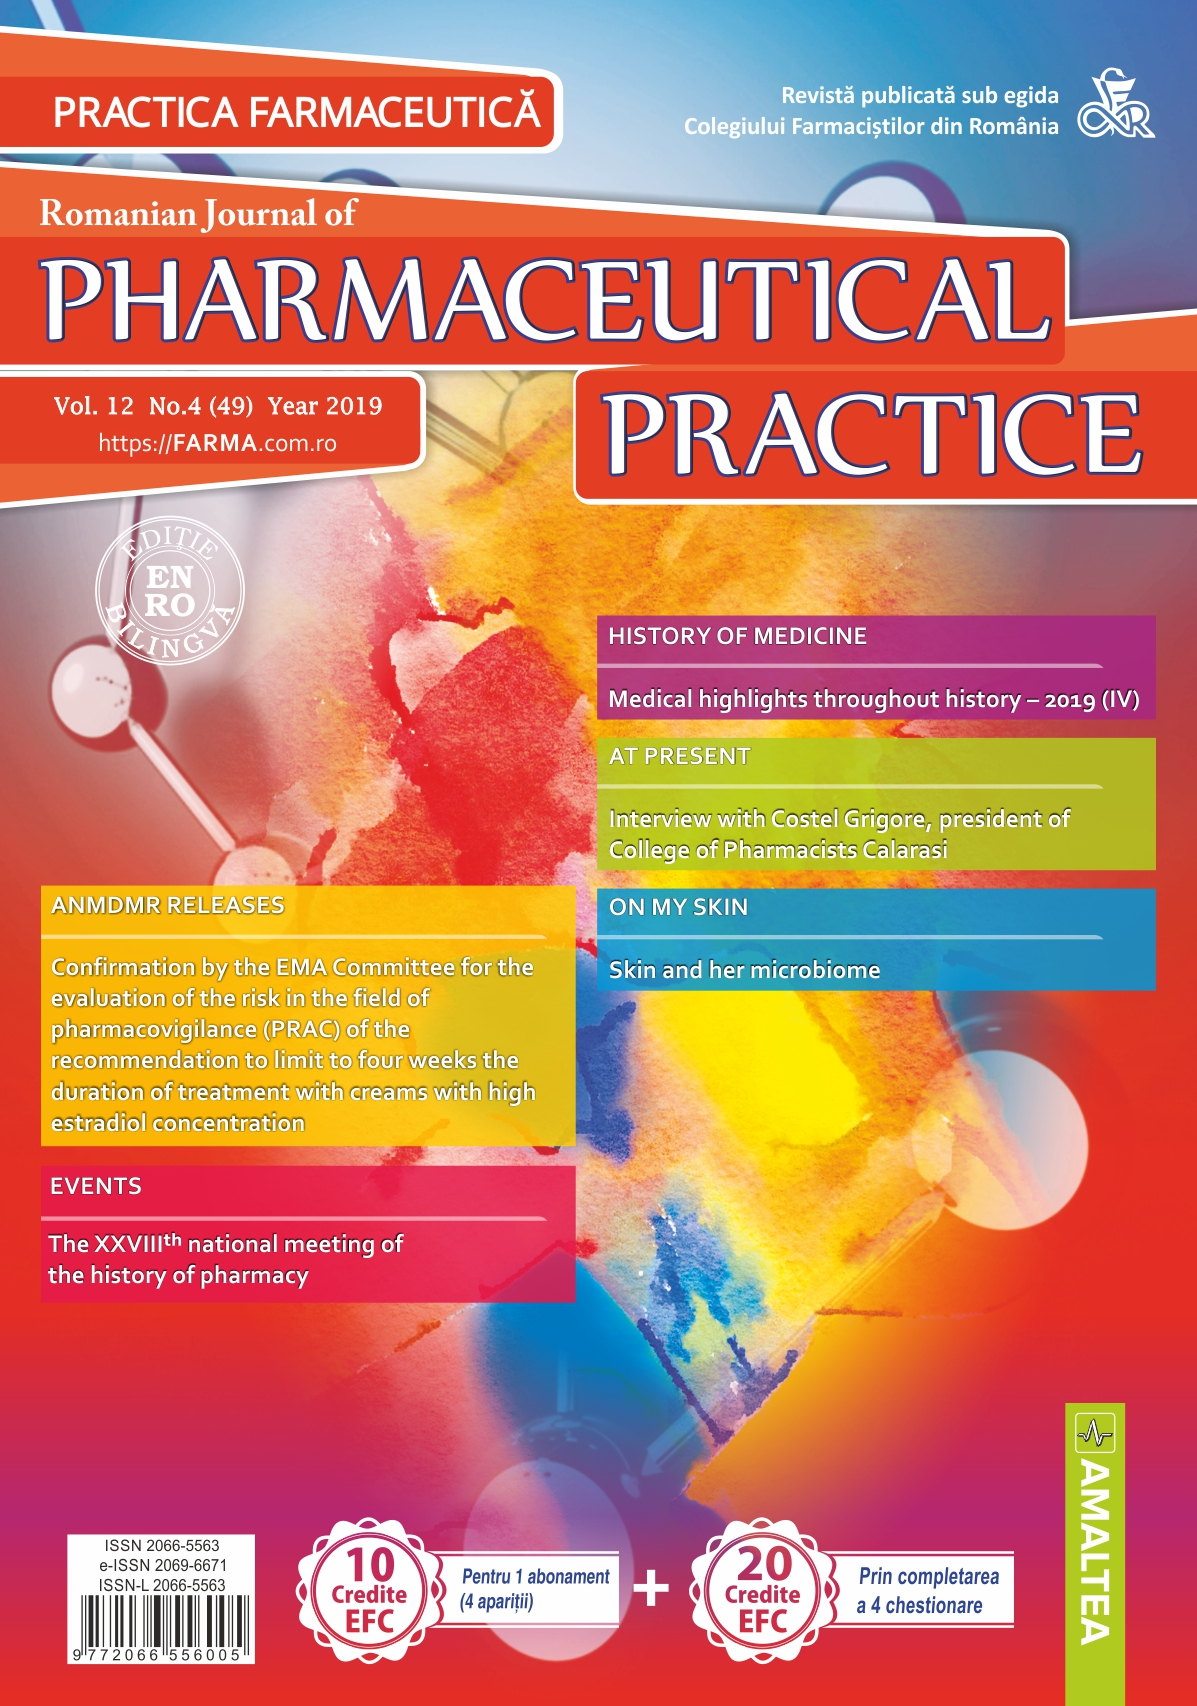 Romanian Journal of Pharmaceutical Practice - Practica Farmaceutica, Vol. 12, No. 4 (49), 2019